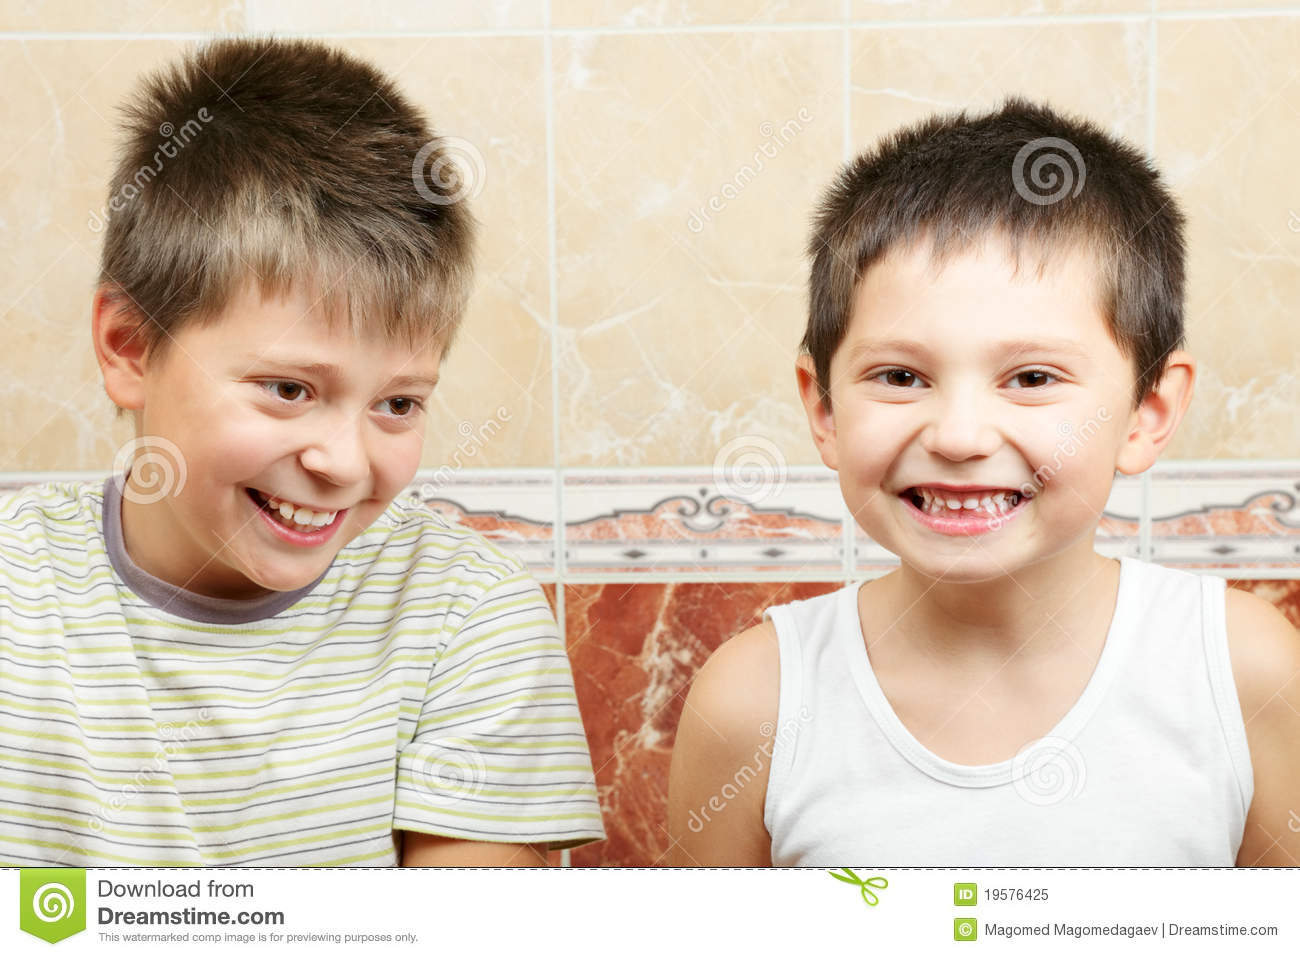 Funny Boys Royalty Free Stock Photo - Image: 19576425